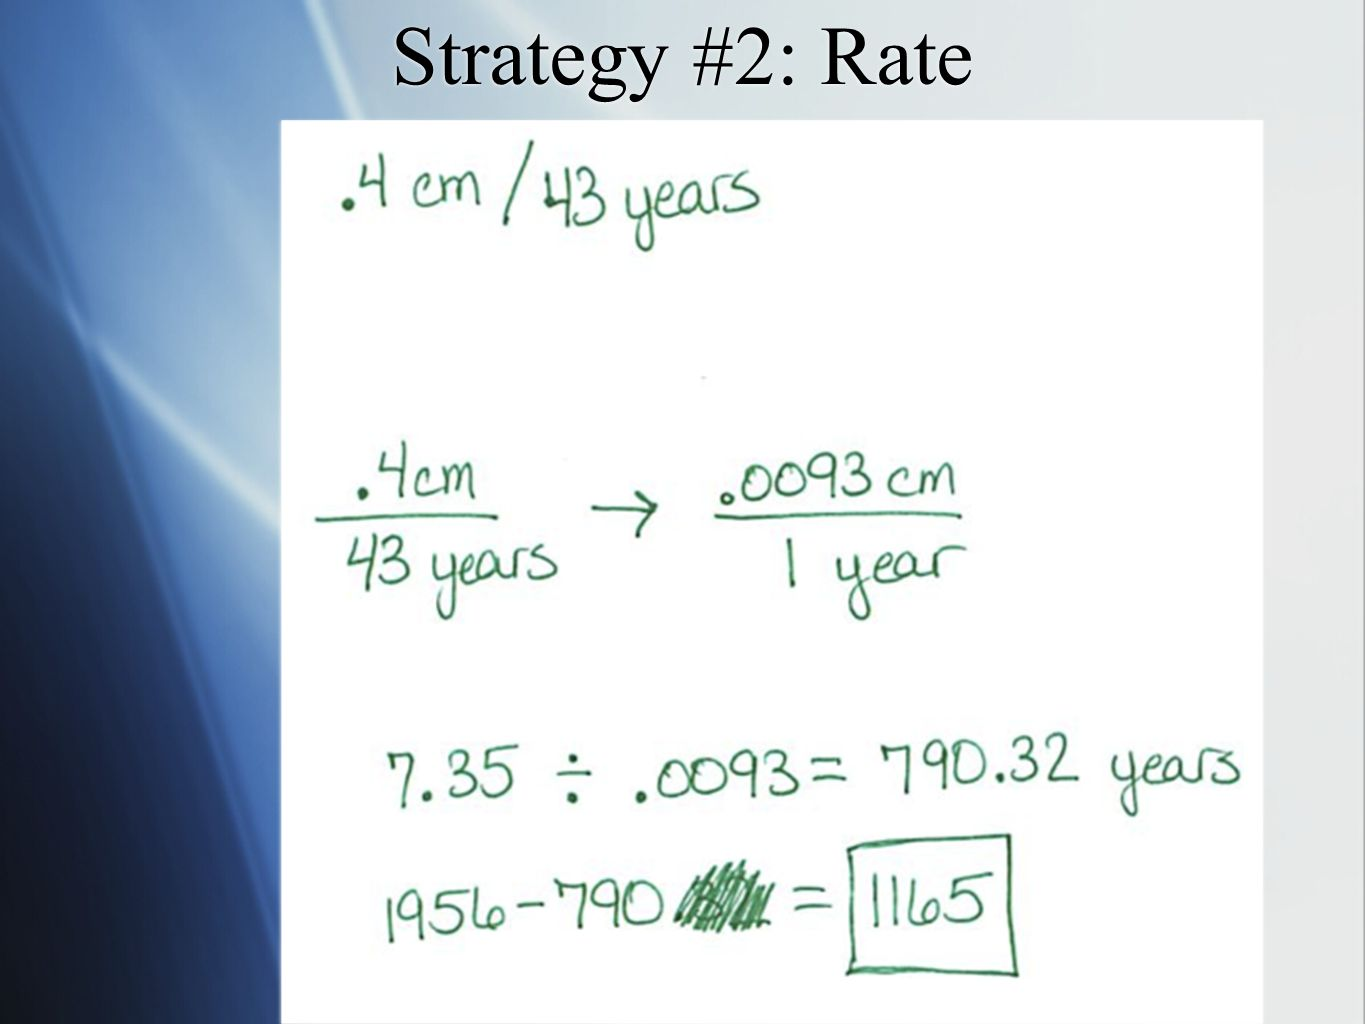 Strategy #2: Rate